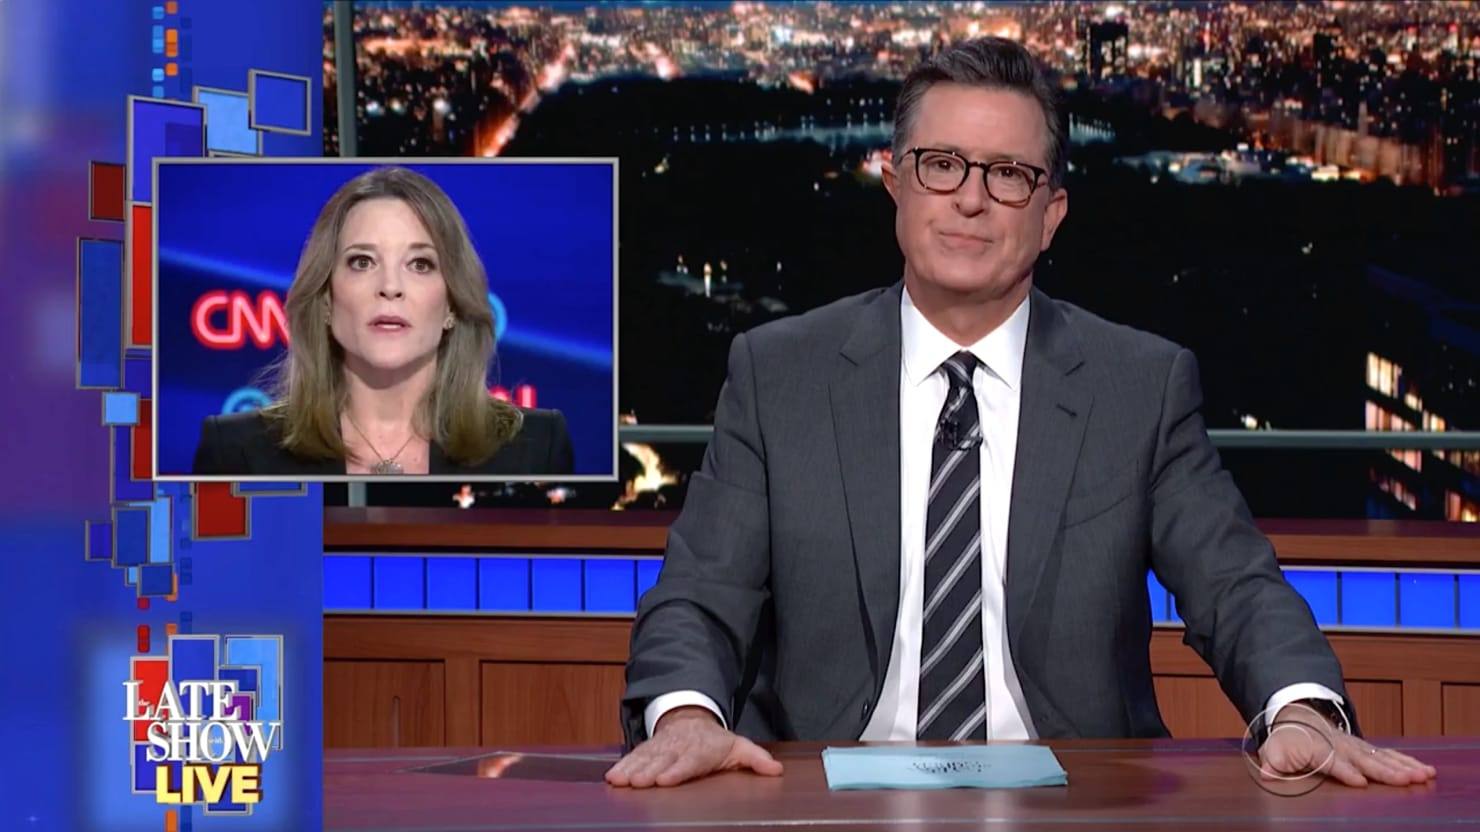 Stephen Colbert Goes After Marianne Williamson for Disturbing Anti-Vaxxer, AIDS Views